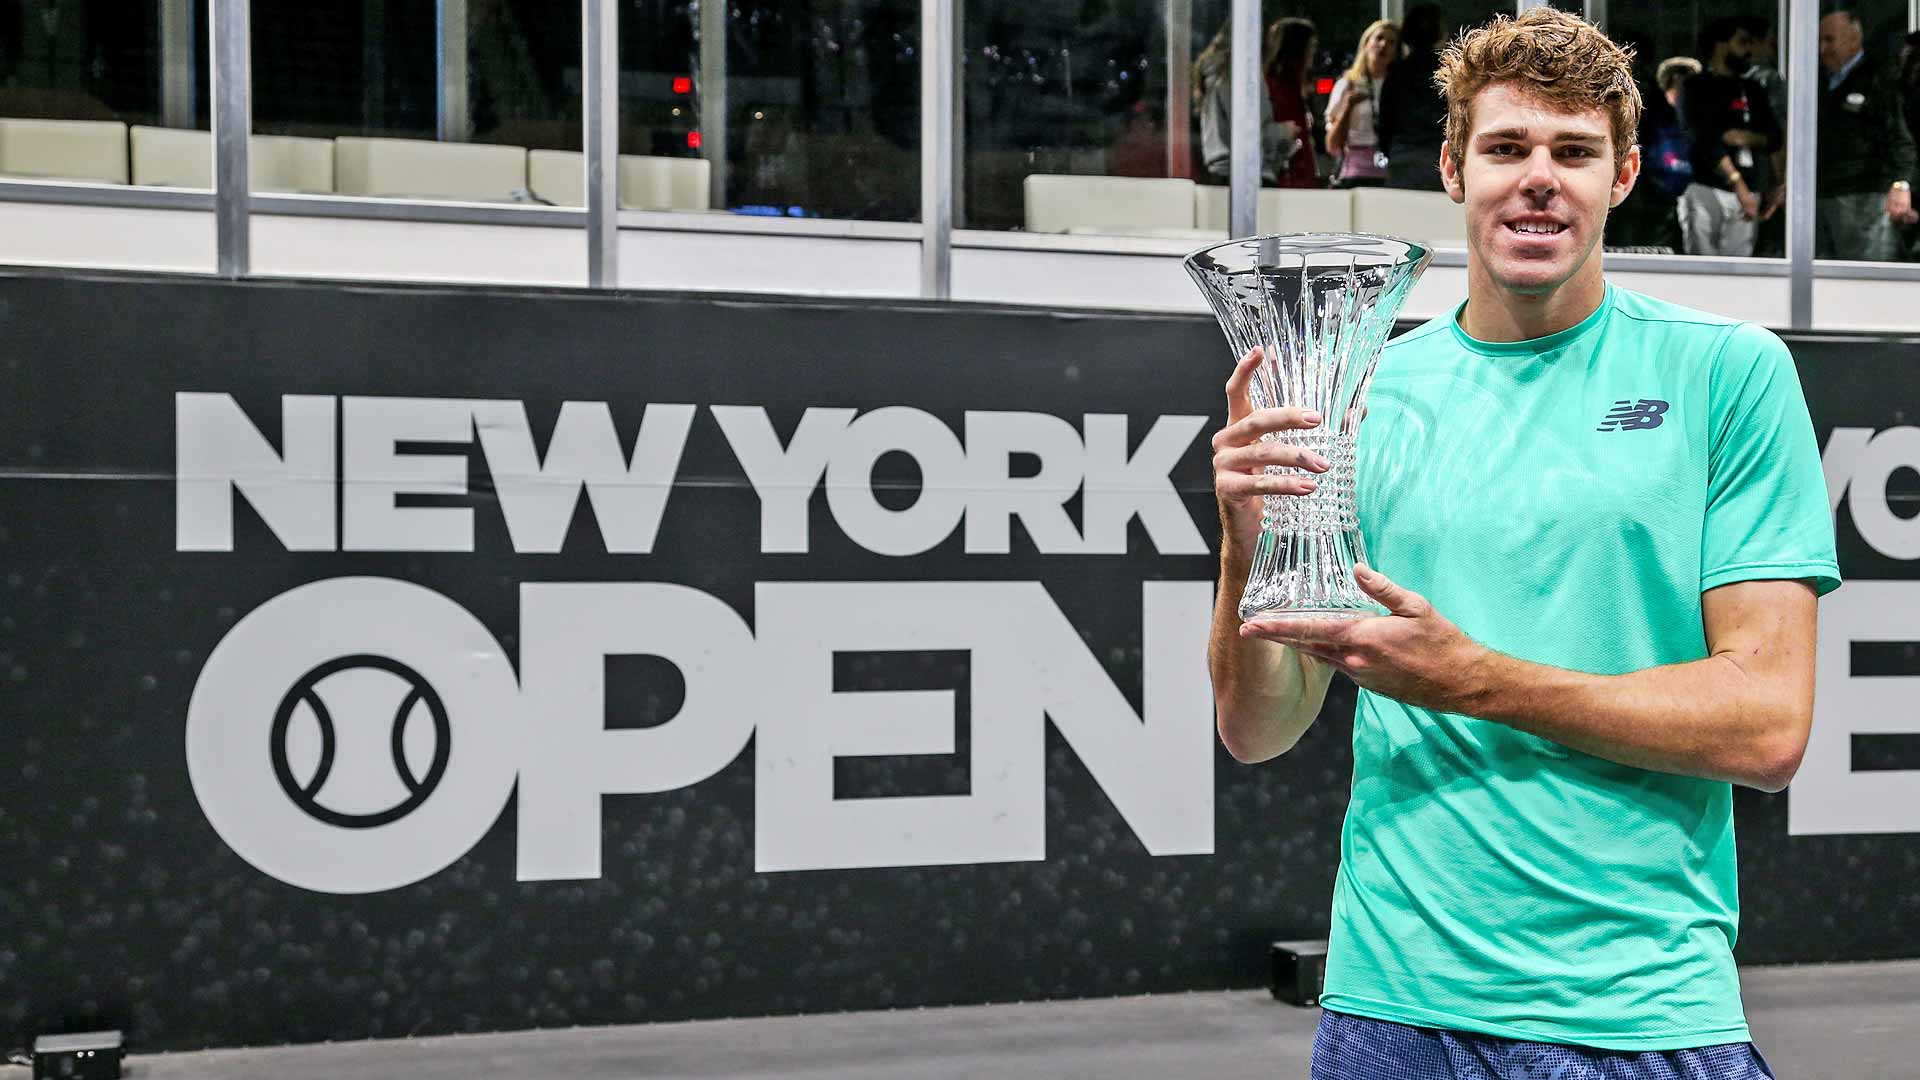 Opelka Wins 2019 New York Open